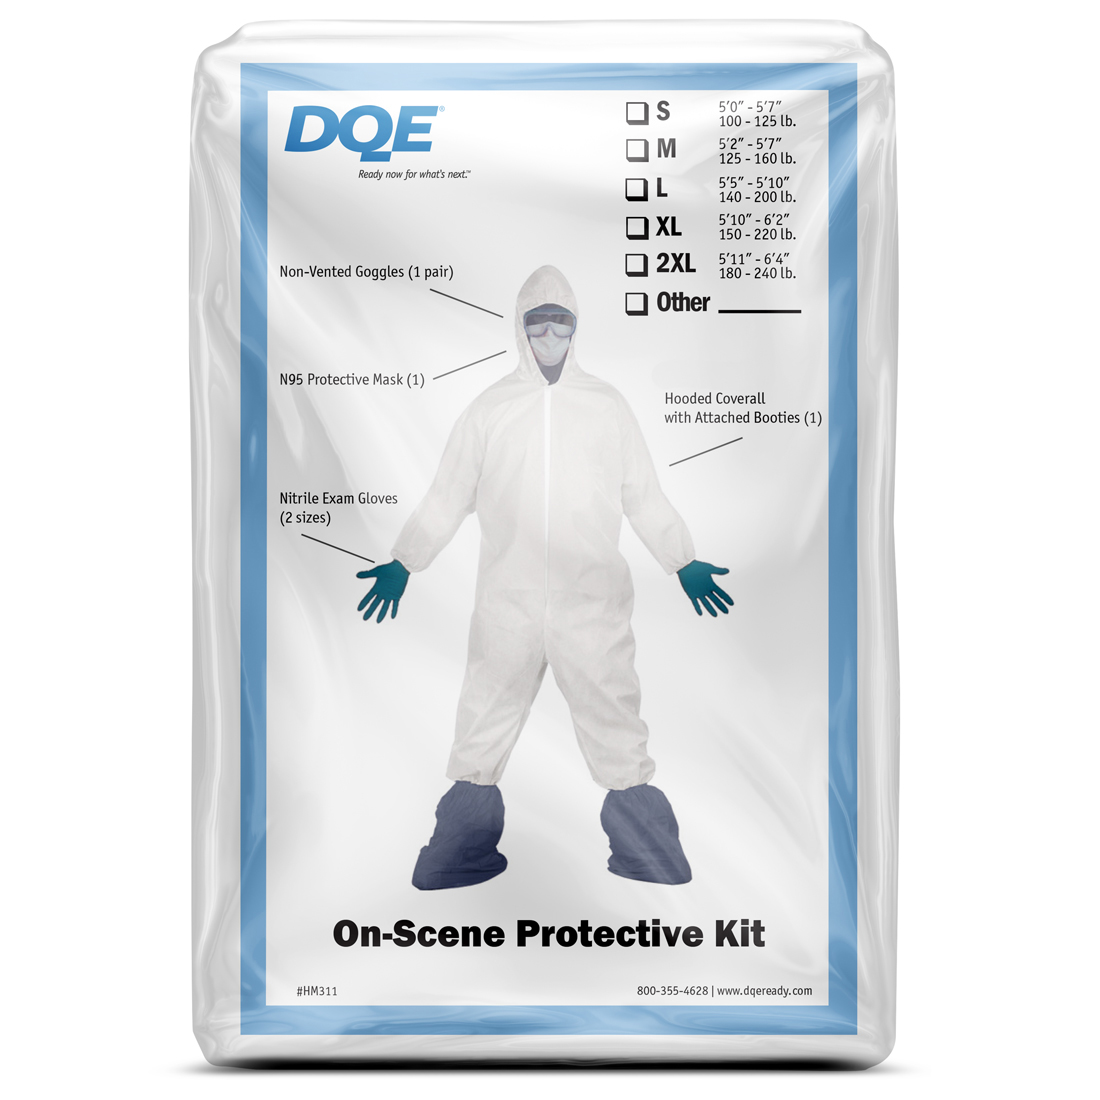 On-Scene Protective Kit Package image